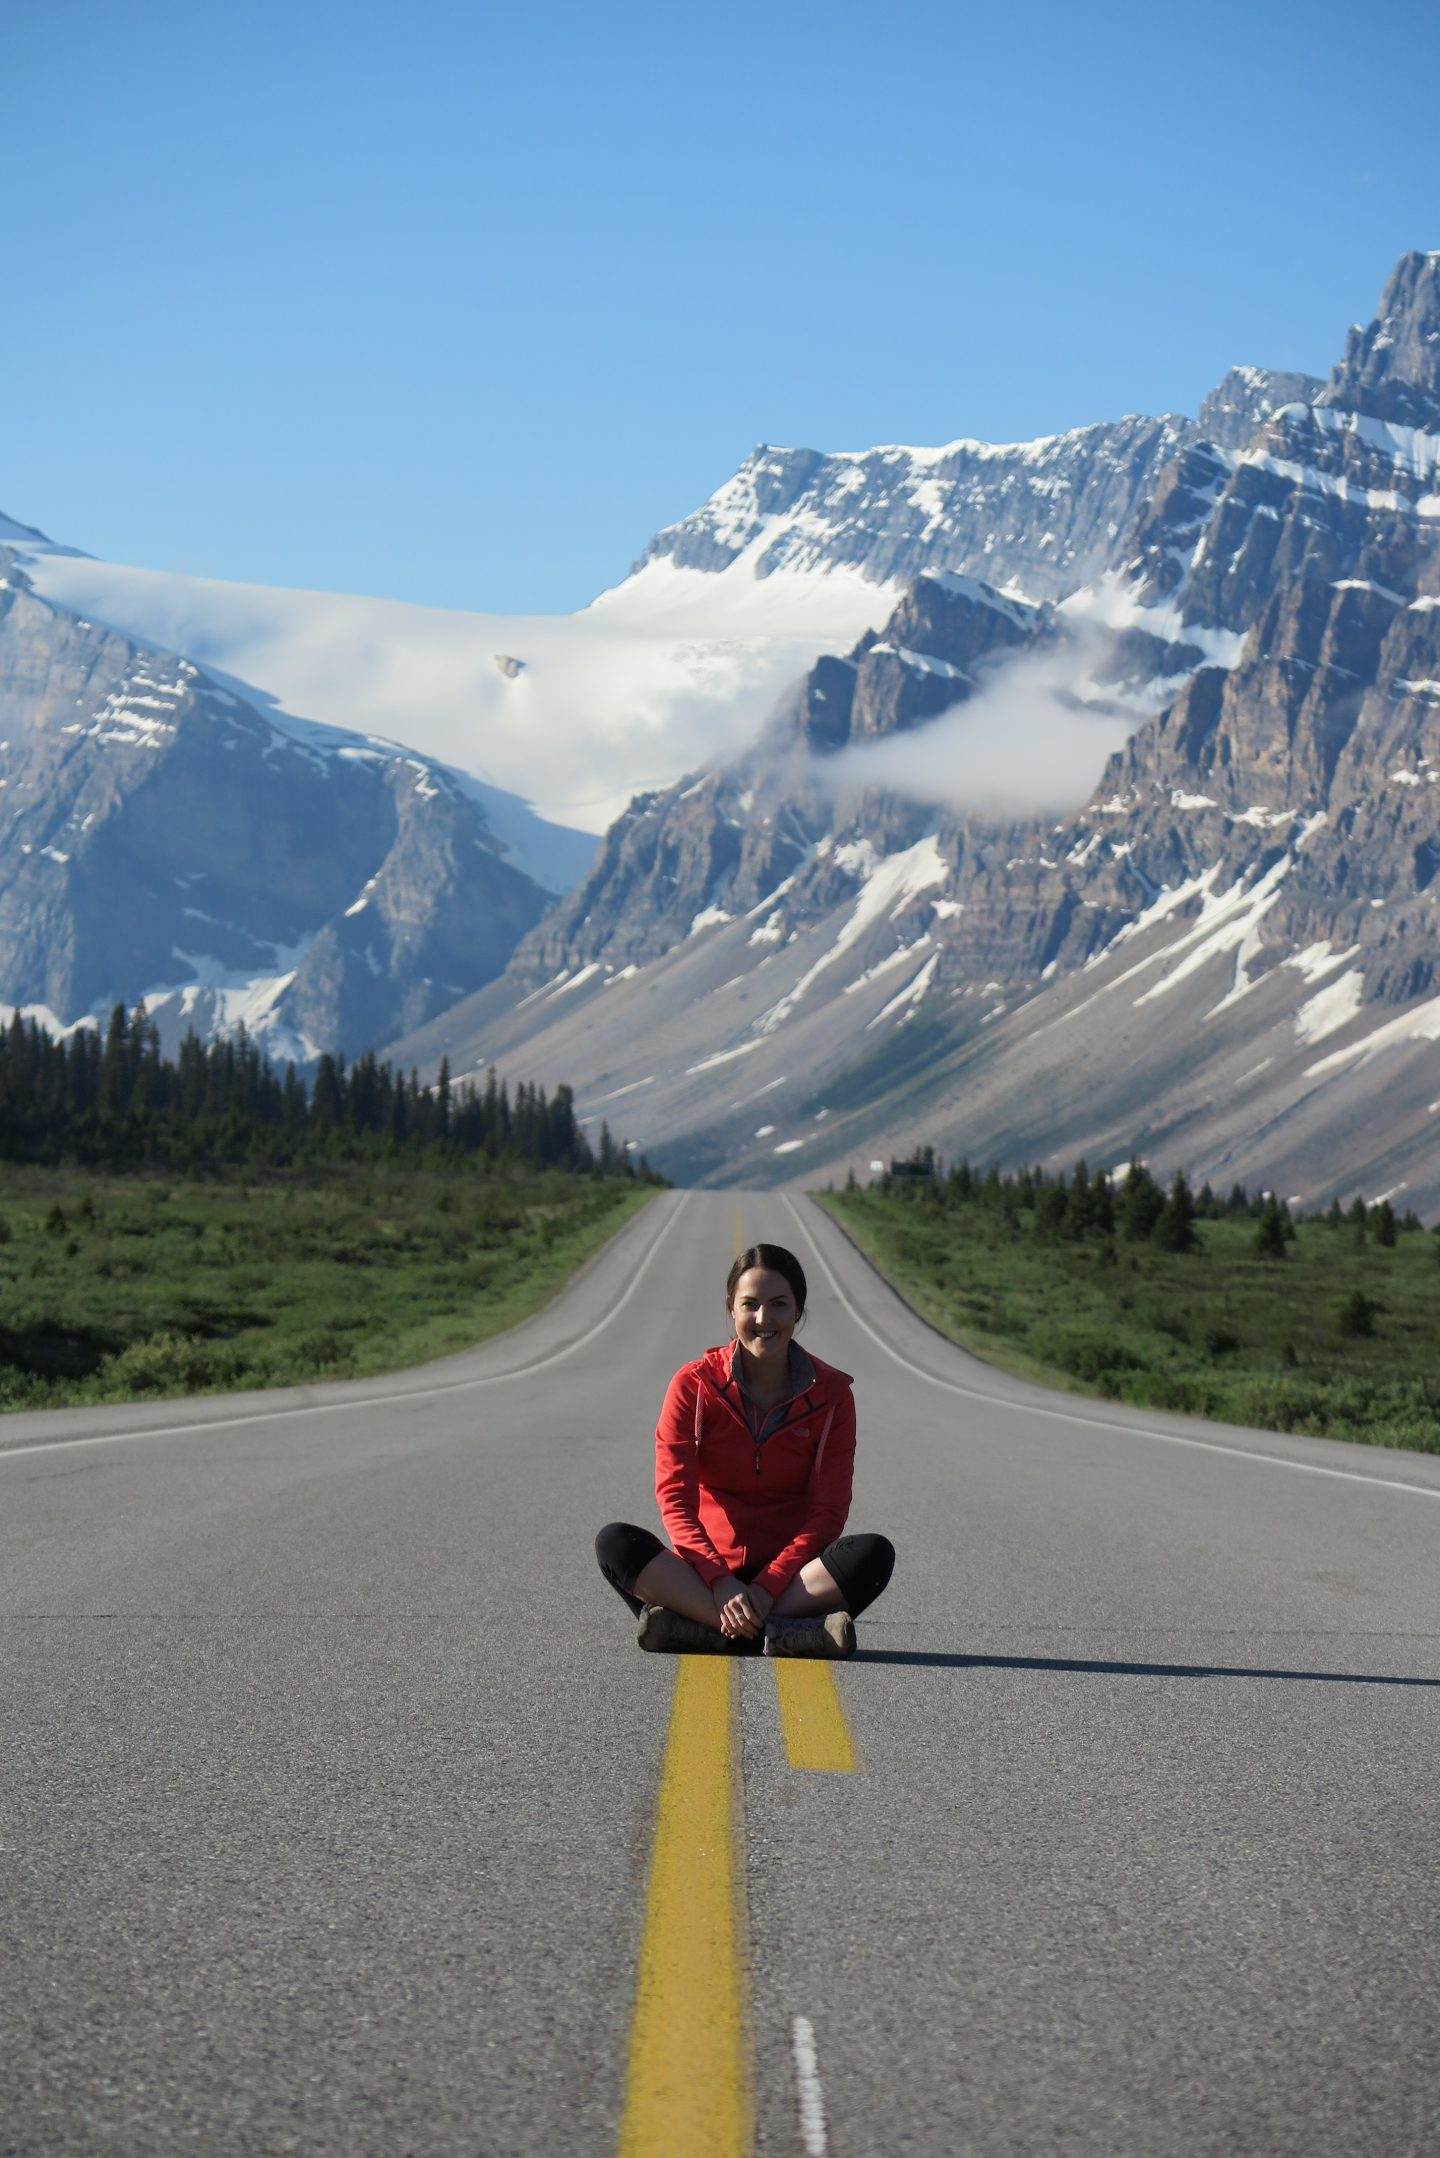 THE ULTIMATE ROADTRIP THROUGH THE CANADIAN ROCKIES: VANCOUVER TO CALGARY